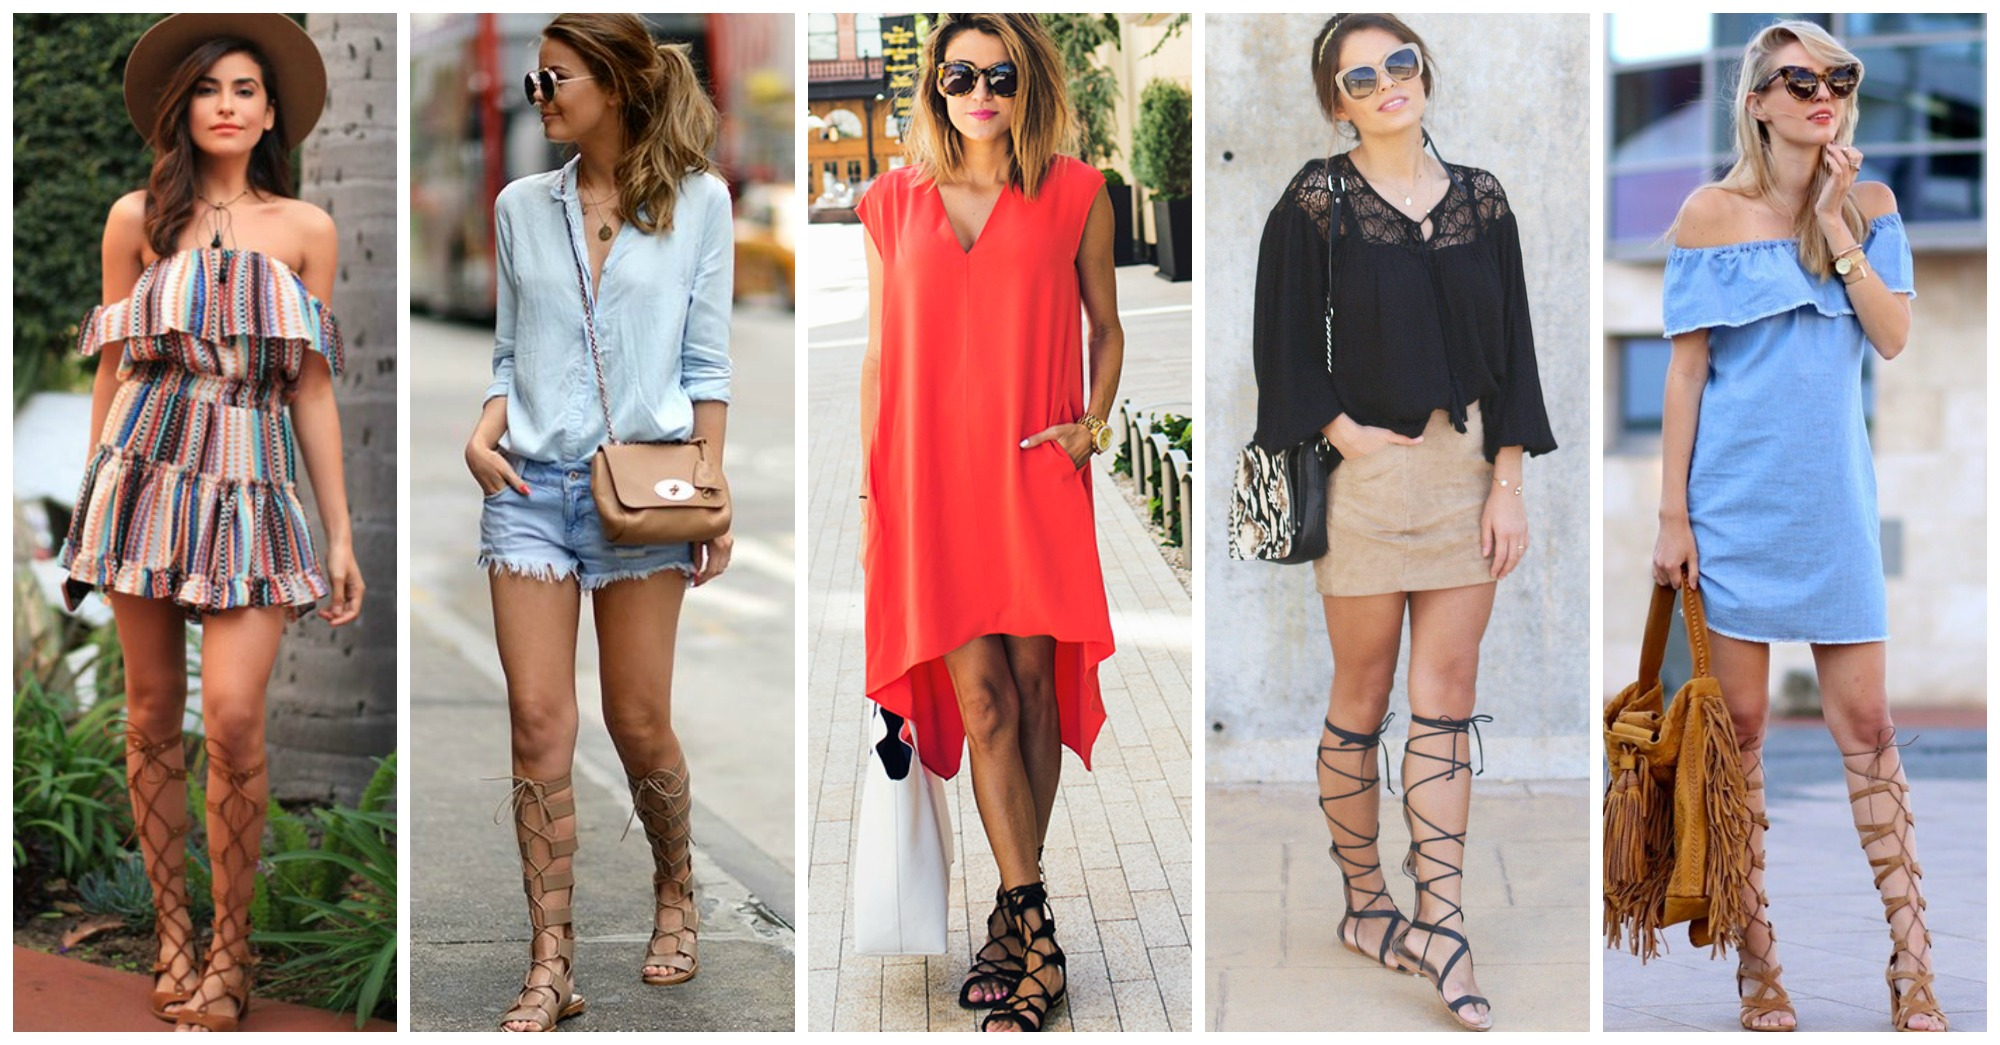 15 Fashionable Ways to Wear Gladiator Sandals